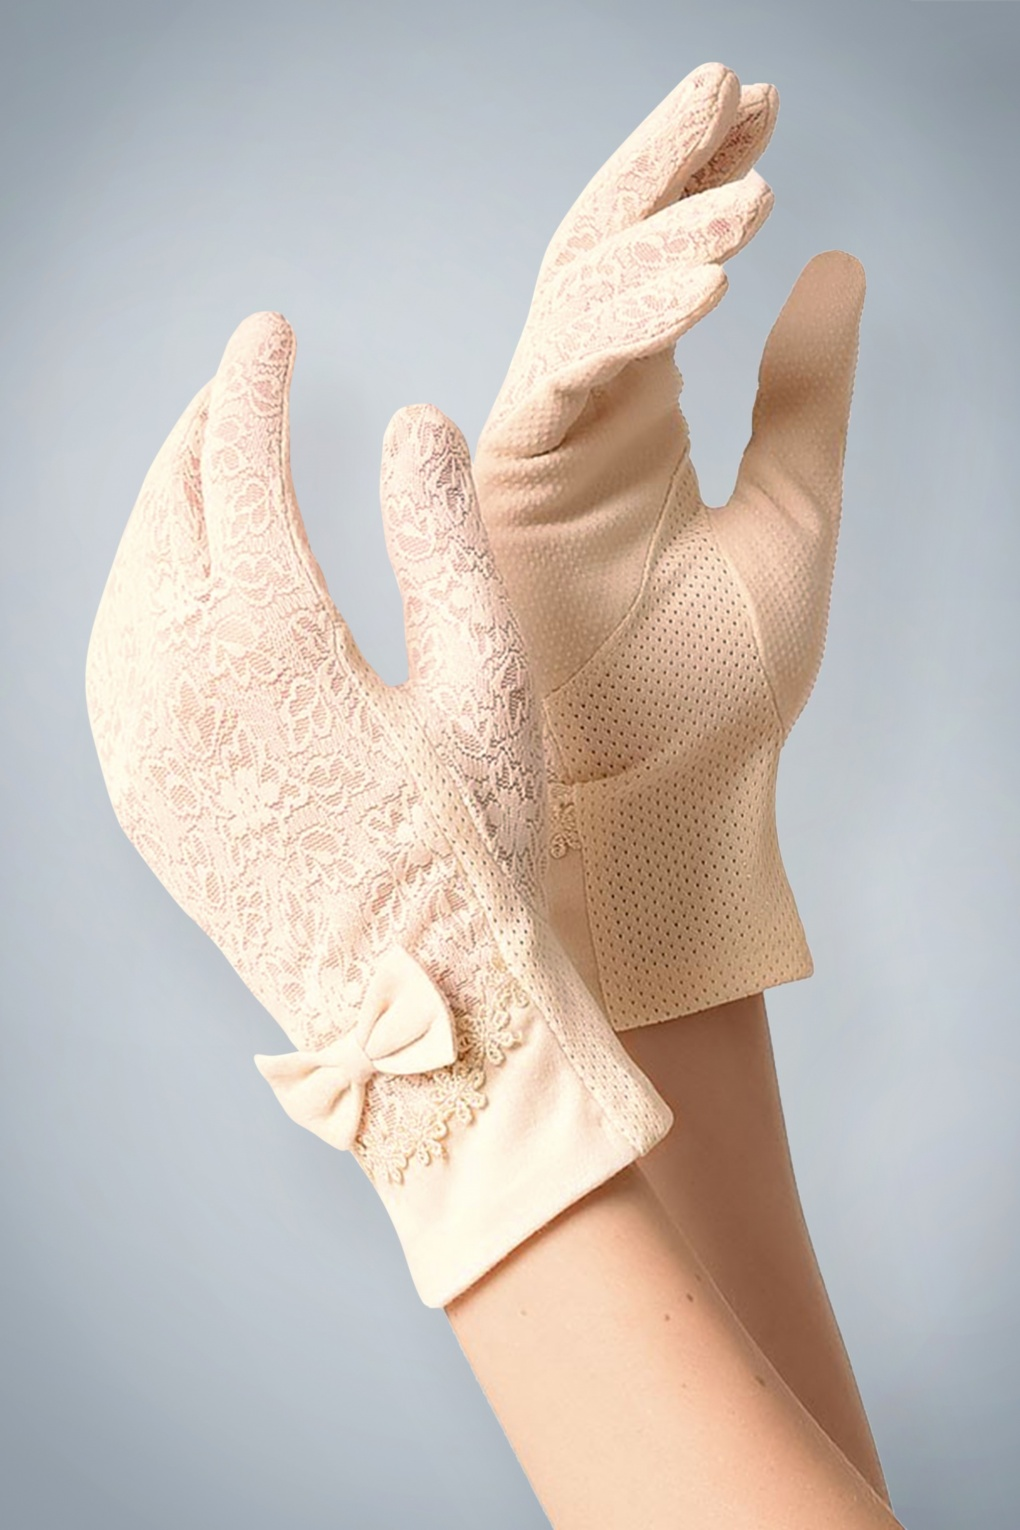 Vintage Style Gloves- Long, Wrist, Evening, Day, Leather, Lace 40s Ruth Lace Gloves in Cream £21.75 AT vintagedancer.com